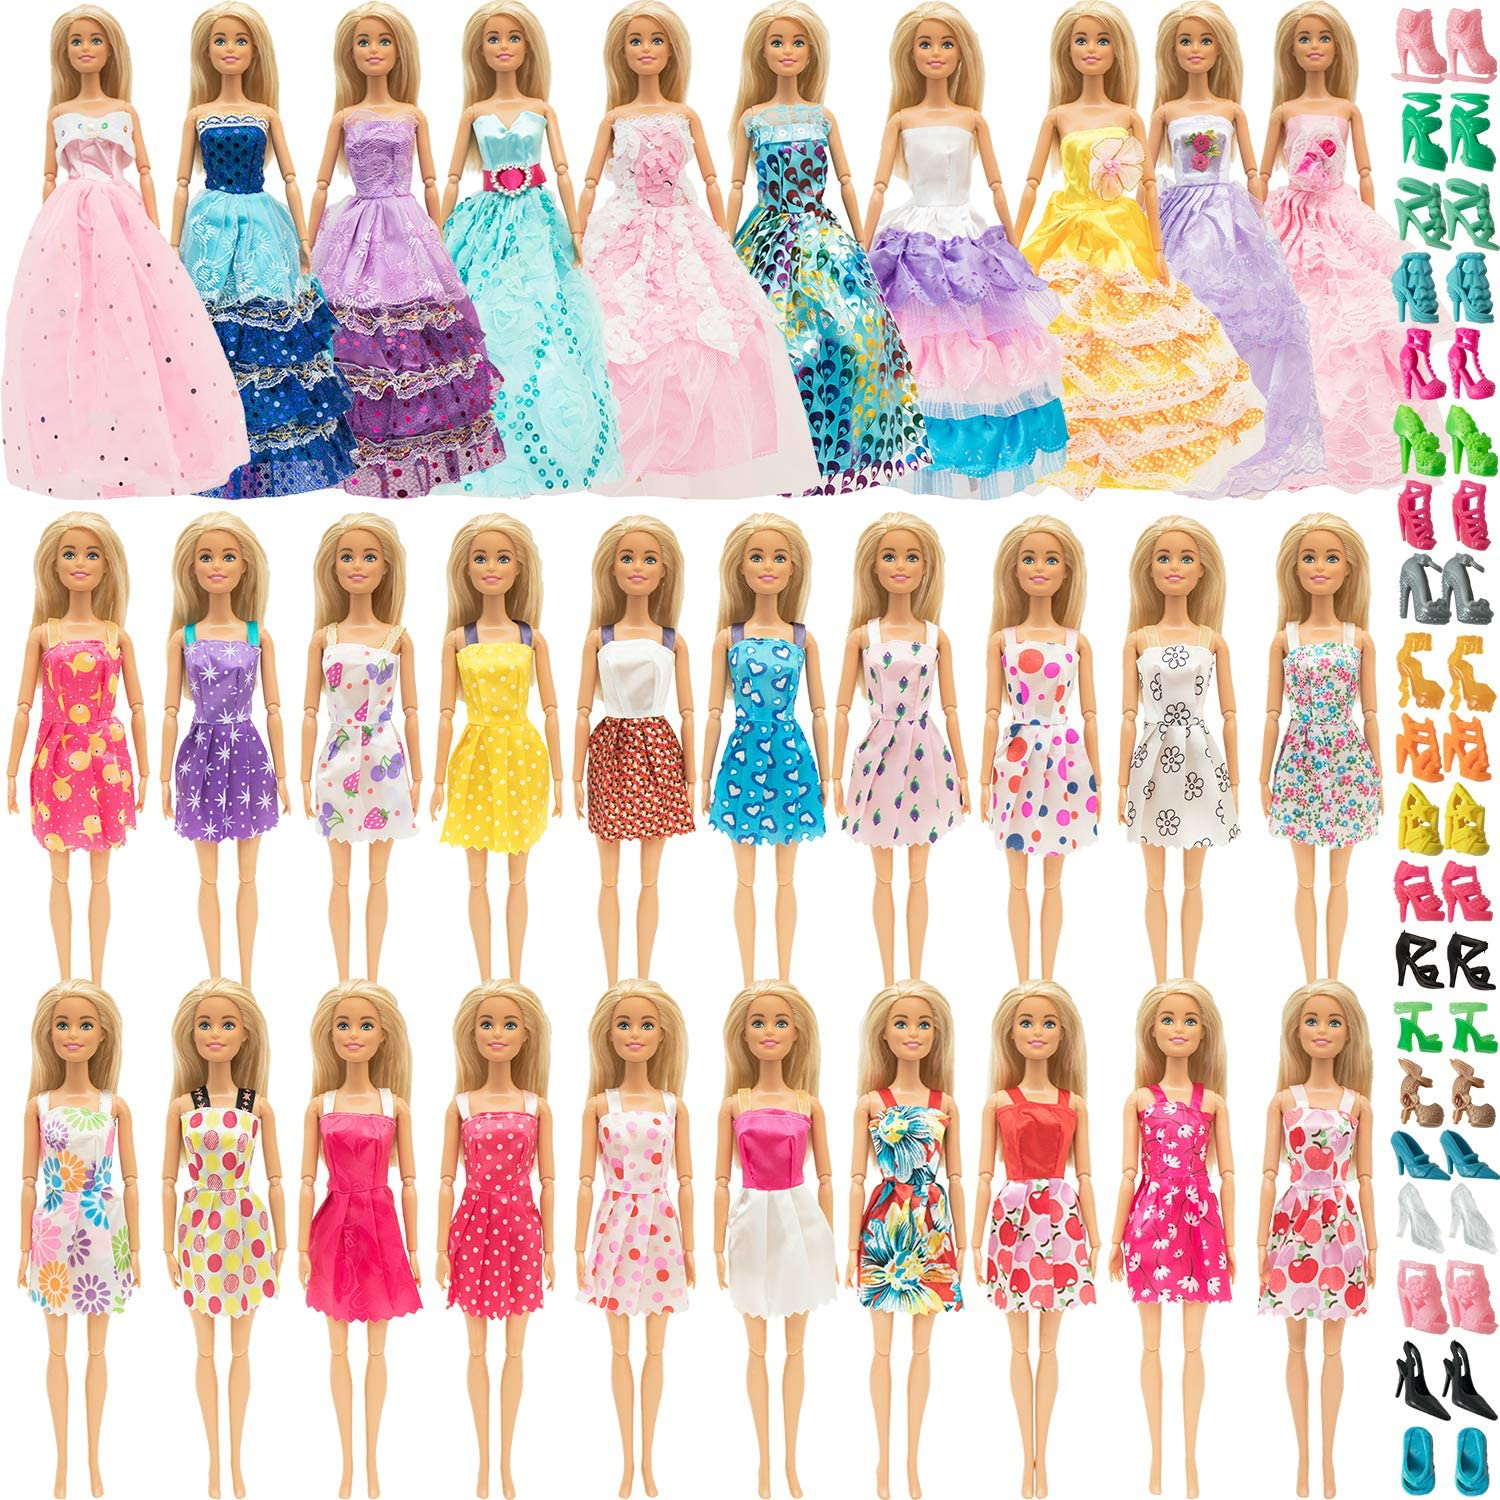 SOTOGO Doll Clothes and Accessories for Houston Mall Girl Fash Max 57% OFF Inch 11.5